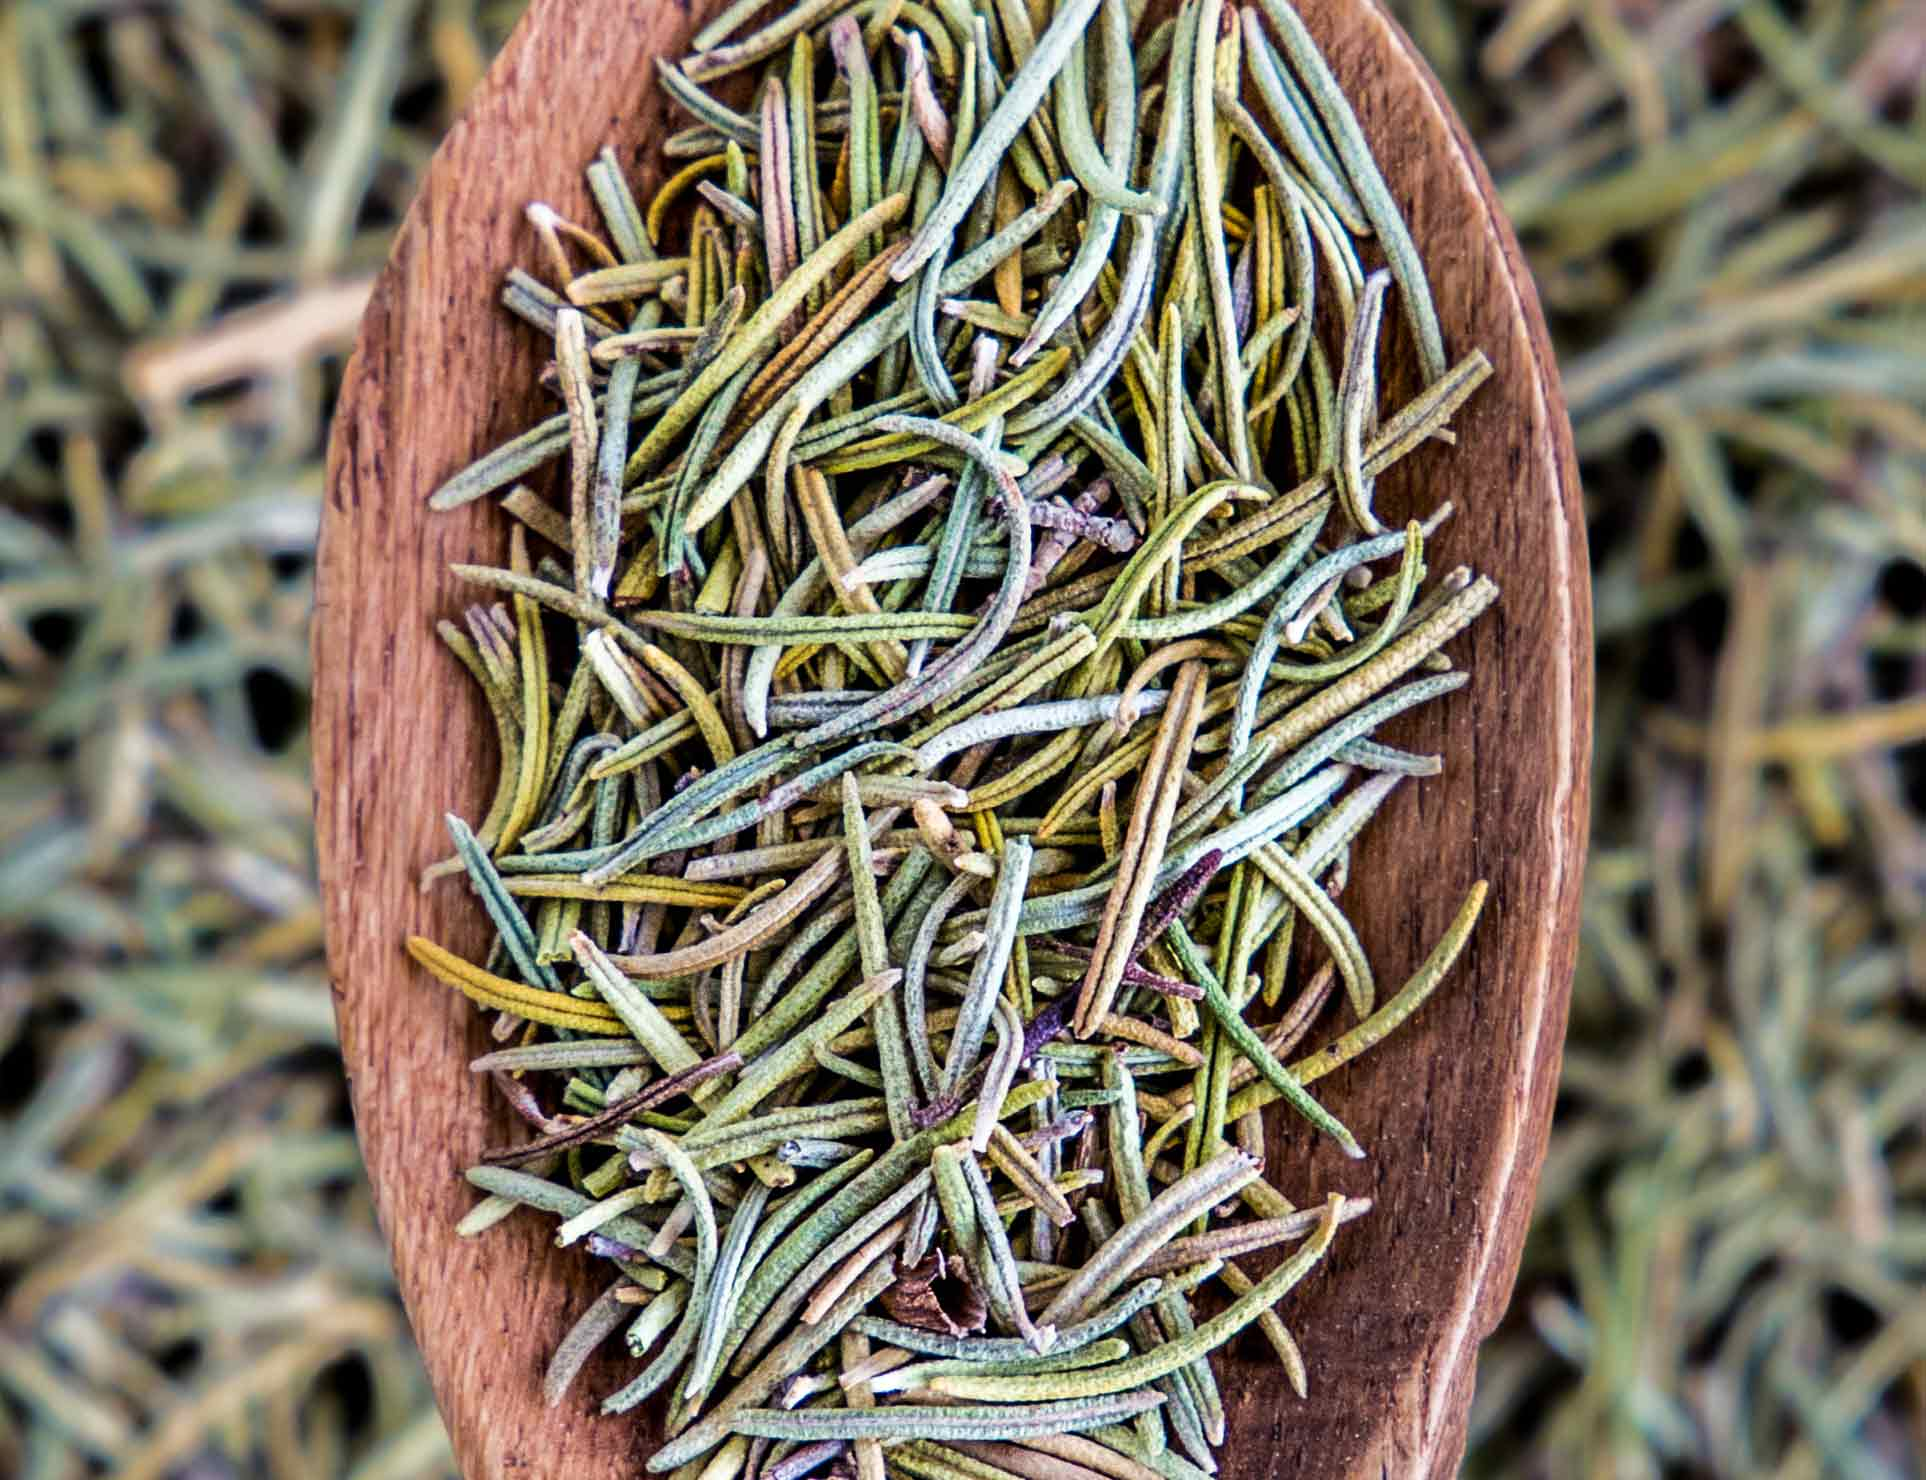 Rosemary - Rosmarinus - Rosemary leaves, rosemary plant